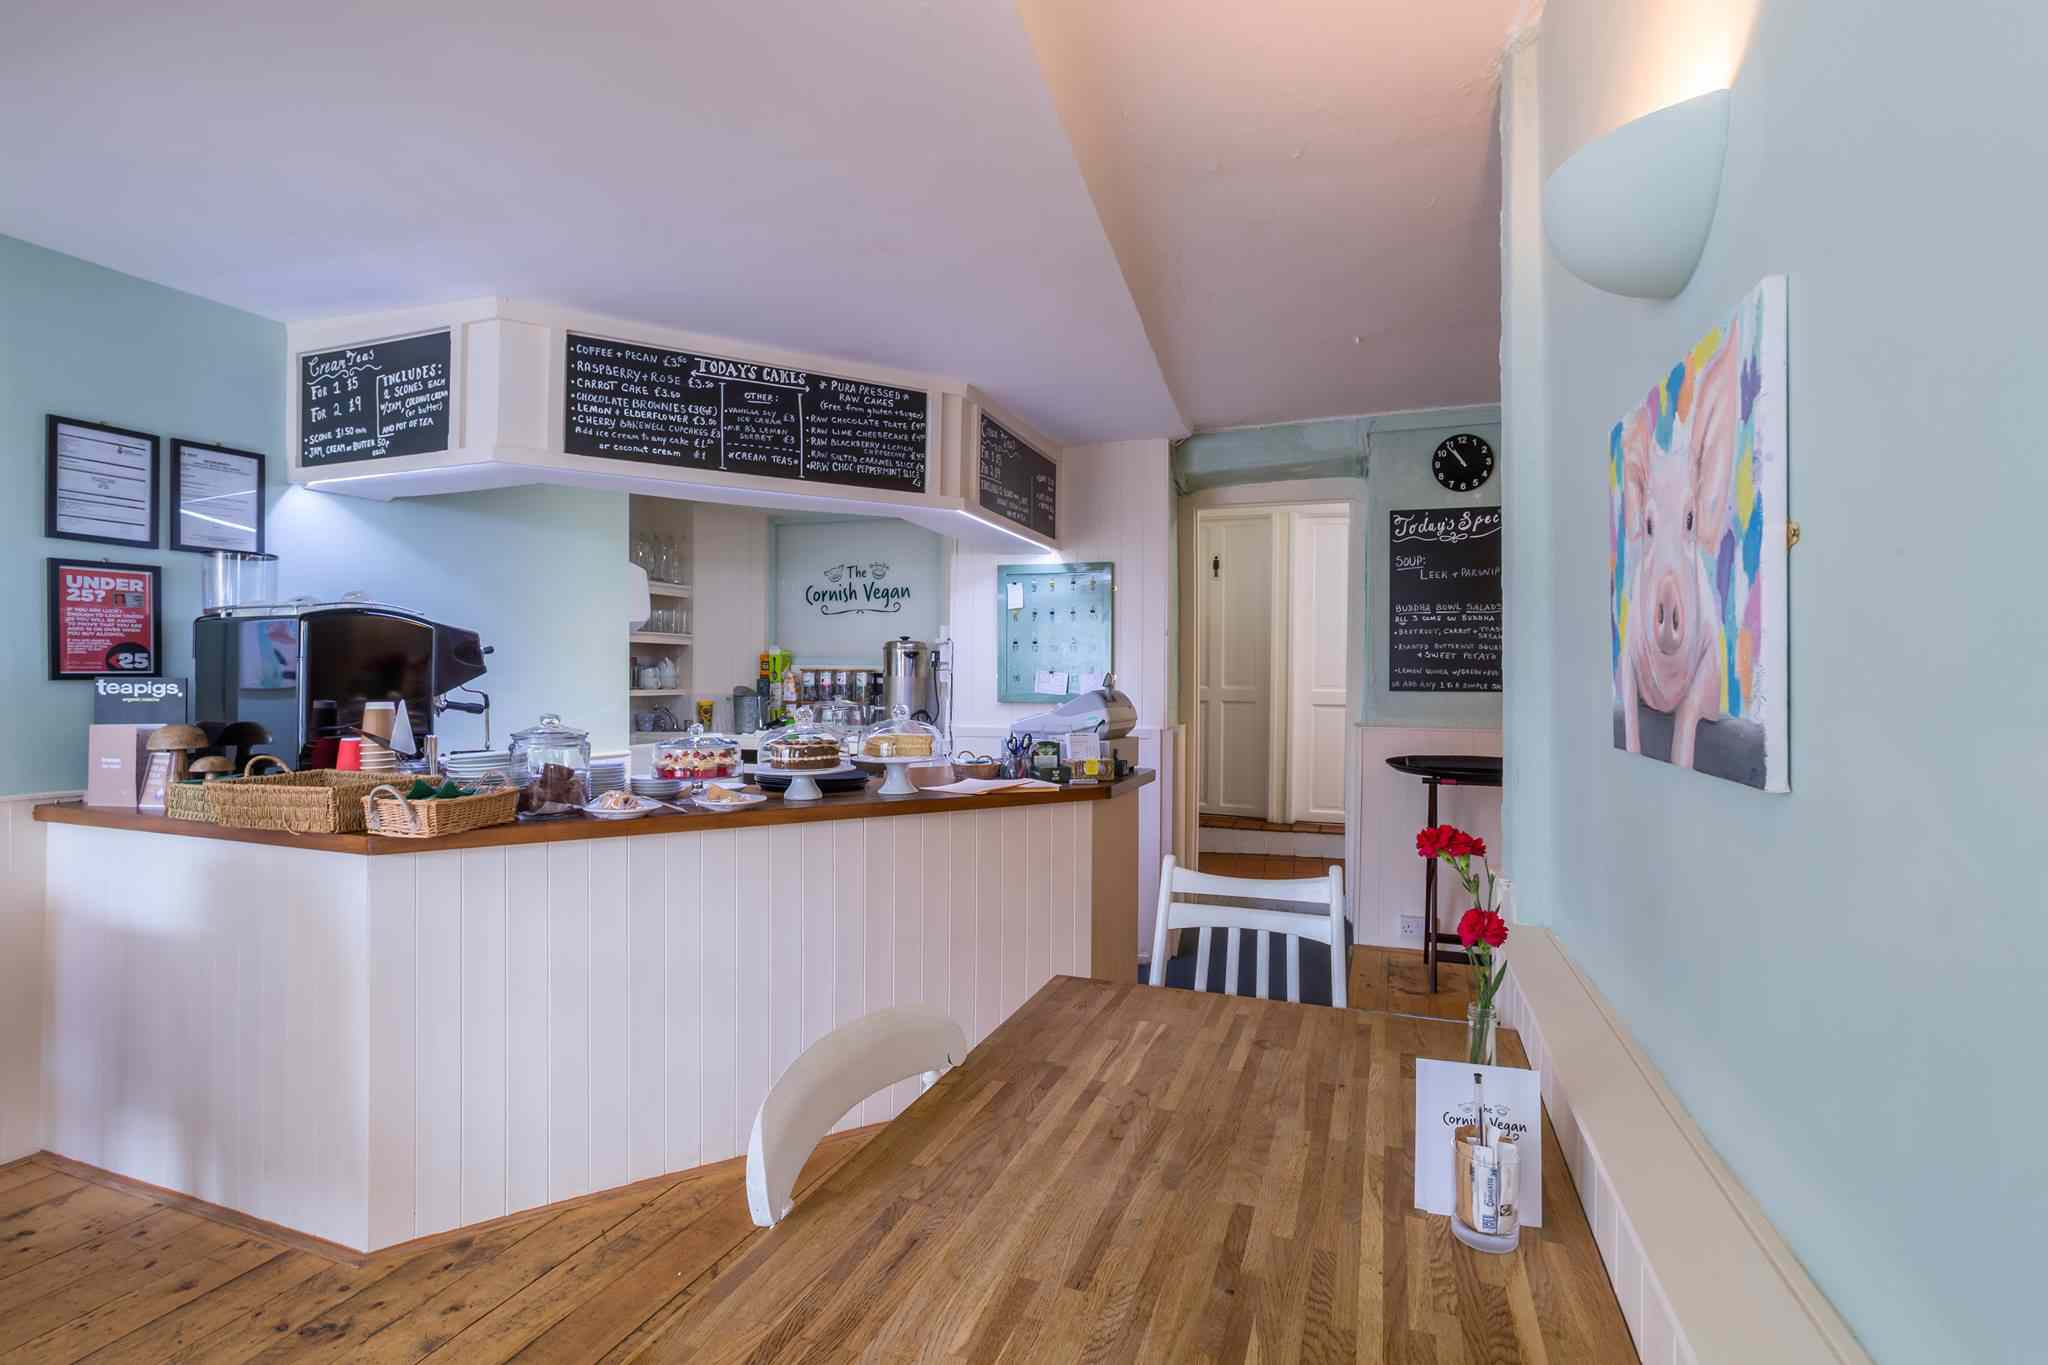 White and pastel blue interior of The Cornish Vegan restaurant. There is a cafe counter and small wooden table